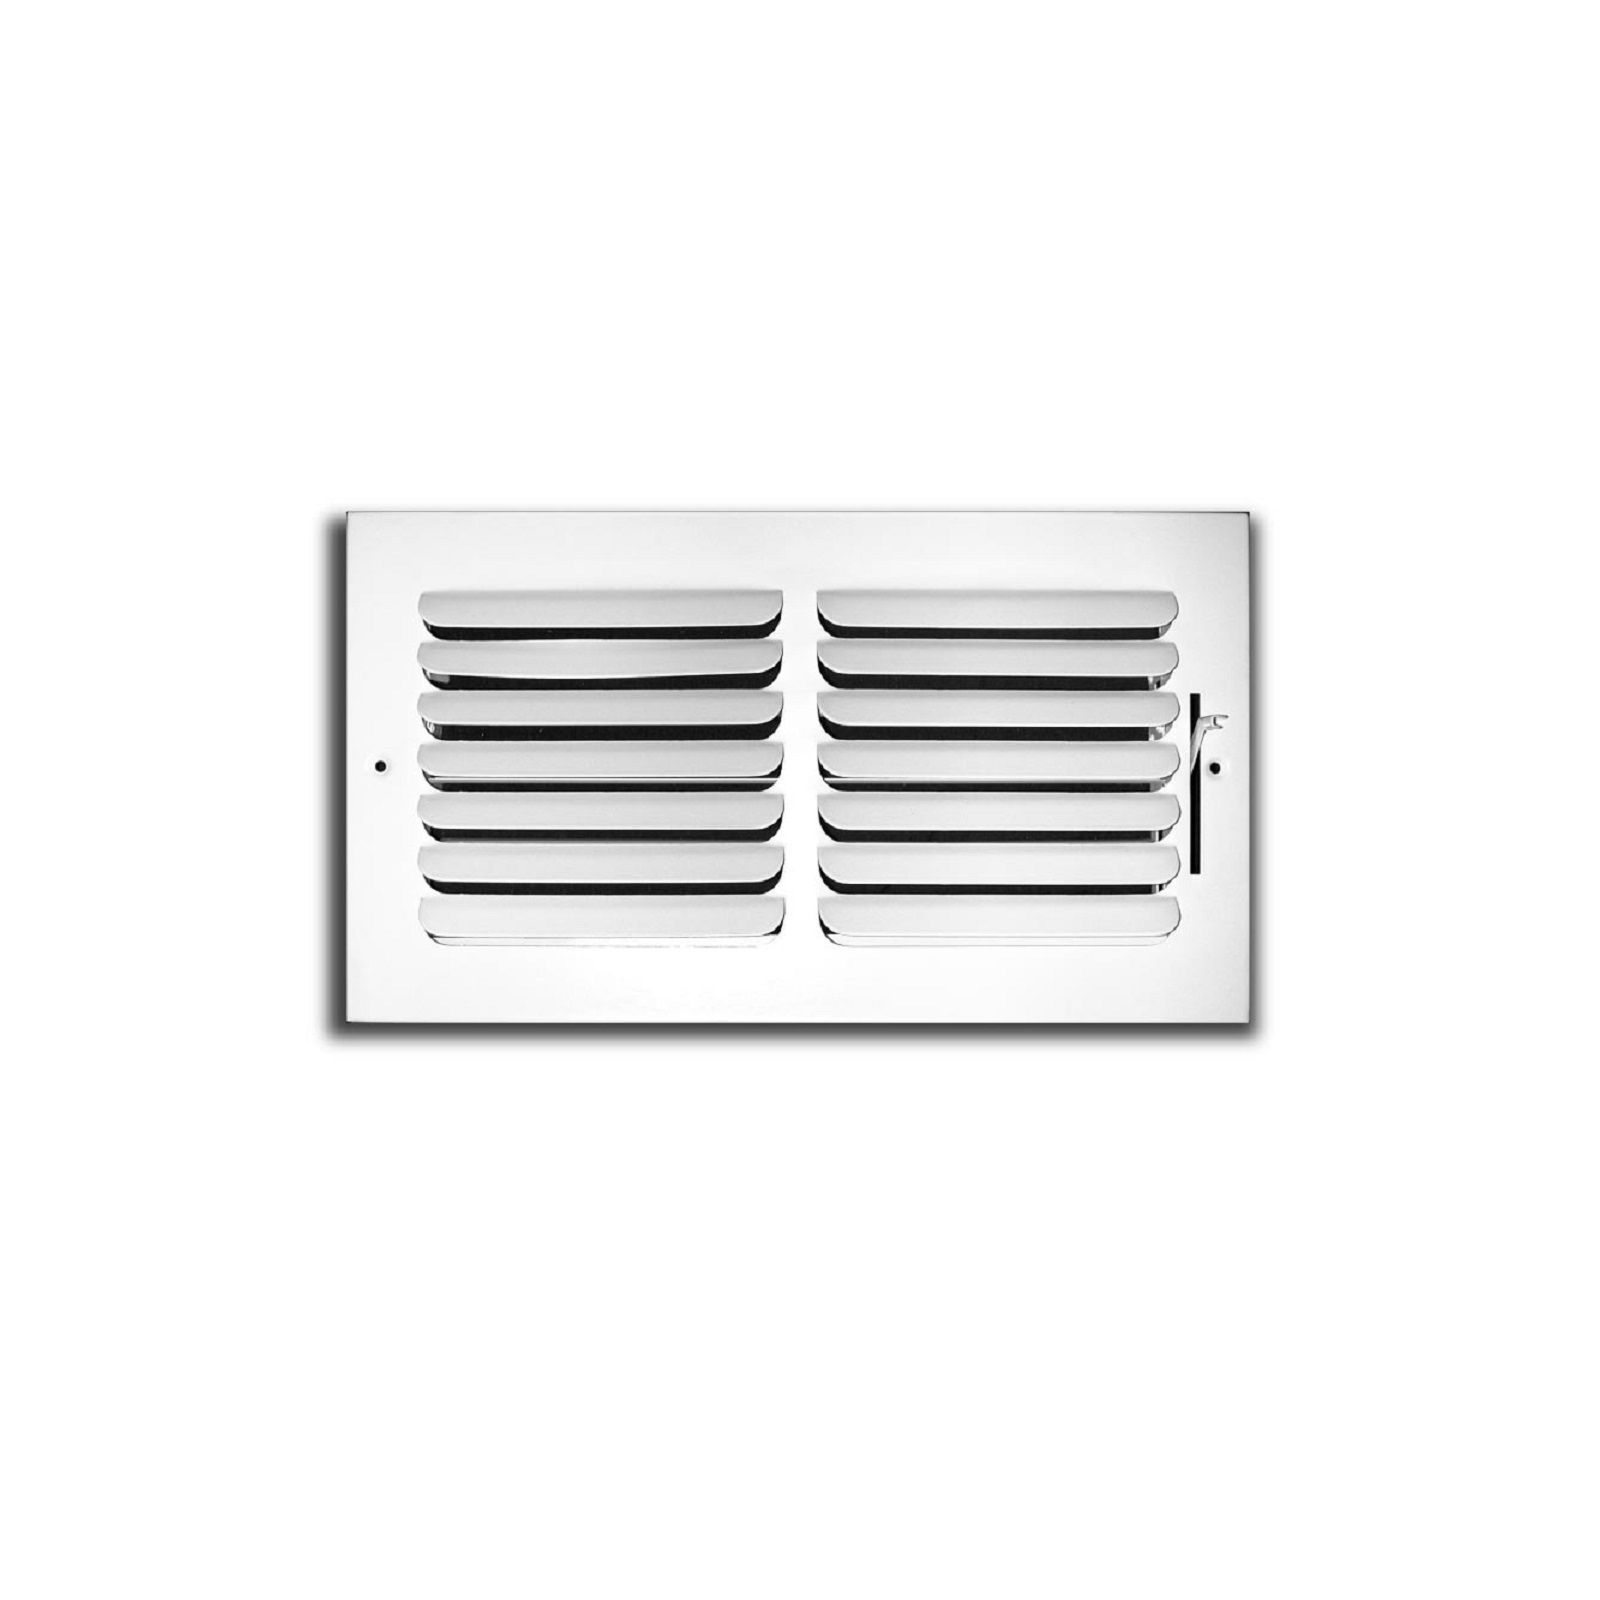 "TRUaire 401M 10X08 - Fixed Curved Blade Wall/Ceiling Register 401M With Multi Shutter Damper, 1-Way, White, 10"" X 08"""